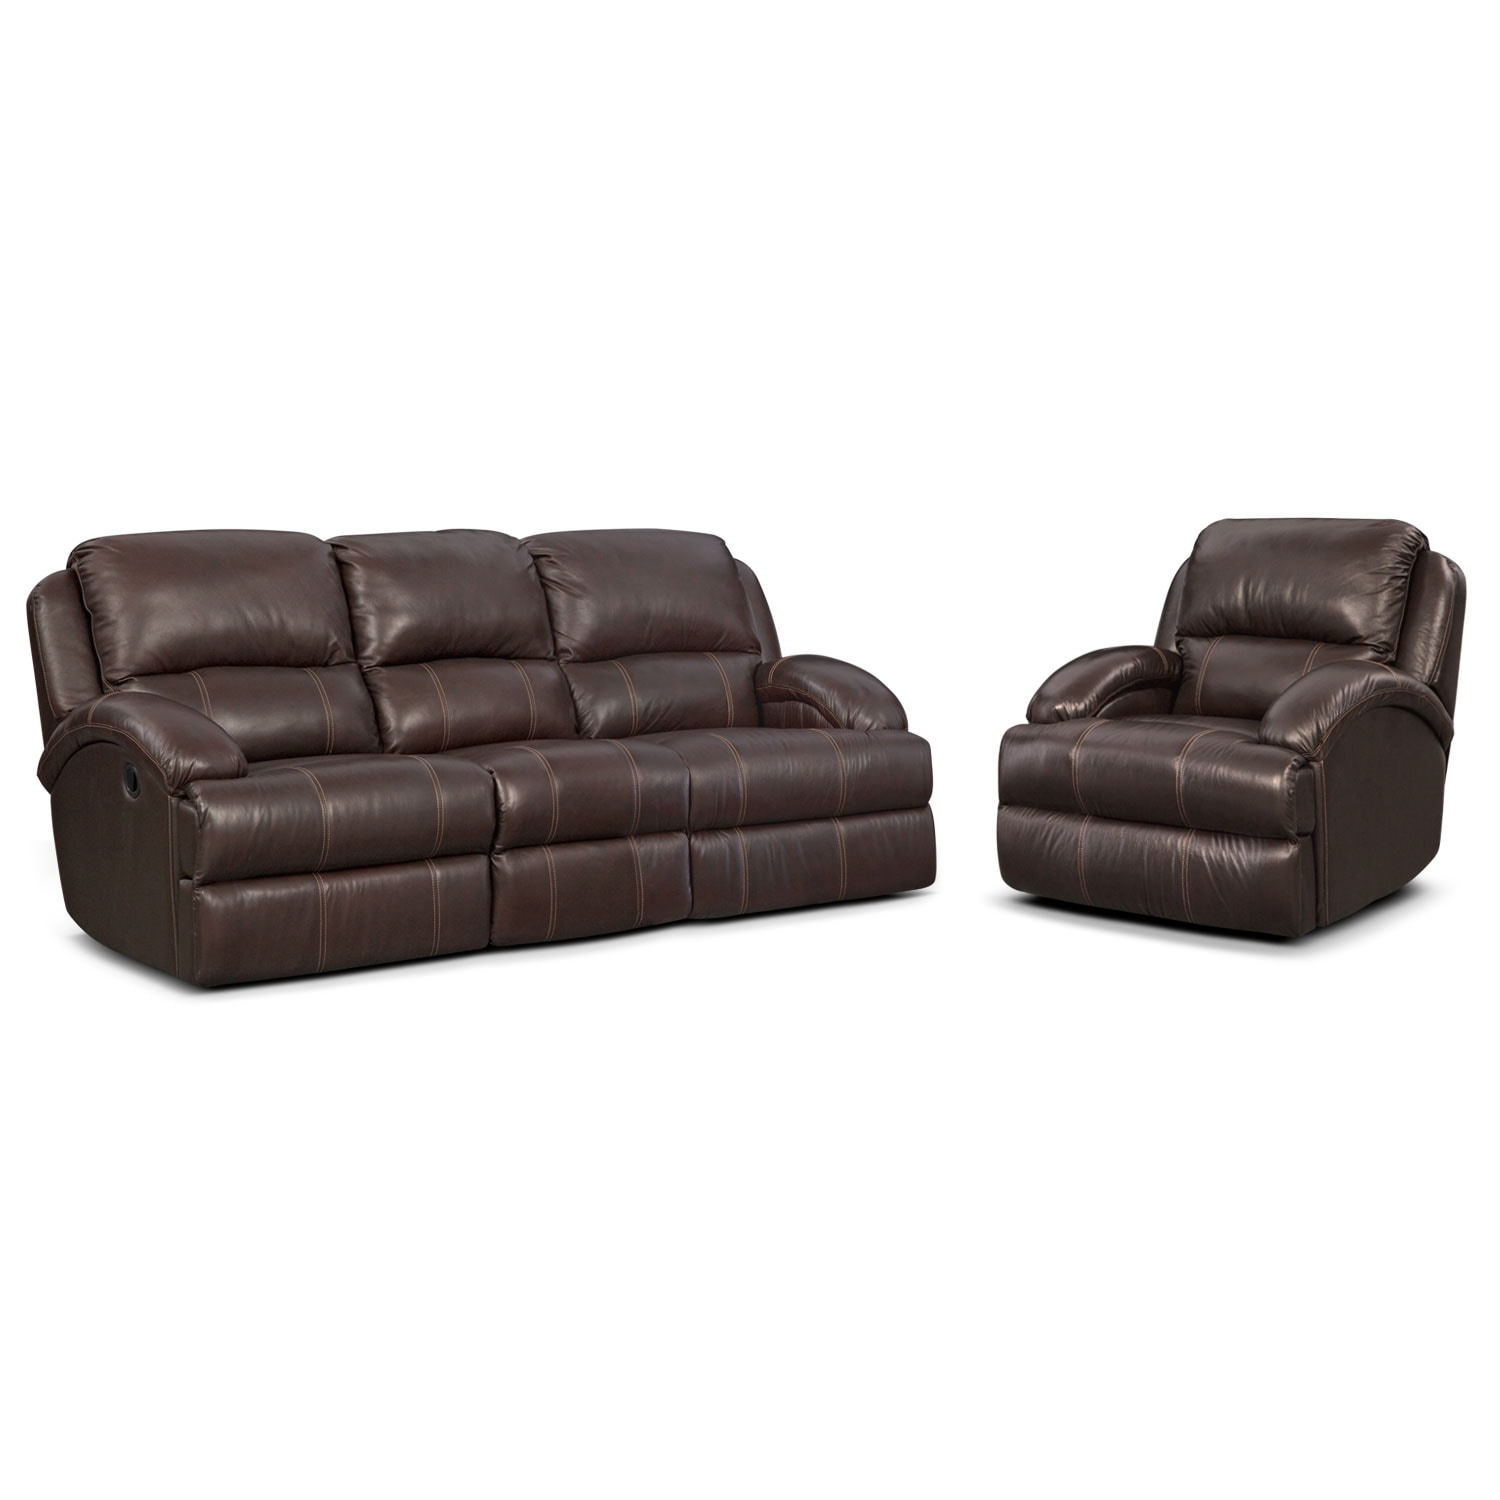 Nolan Dual Reclining Sofa and Glider Recliner Set - Chocolate